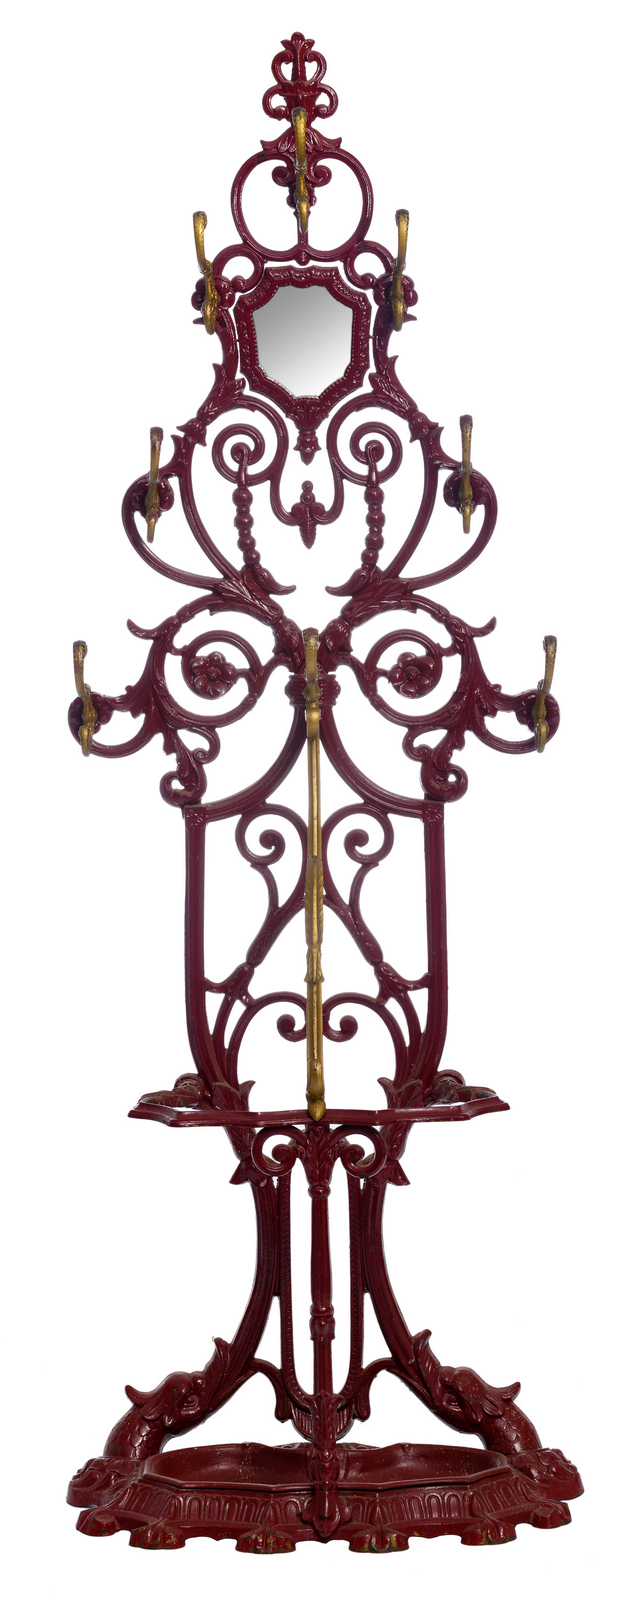 A red lacquered cast iron coat rack, H 195 - W 66 - D 35 cm